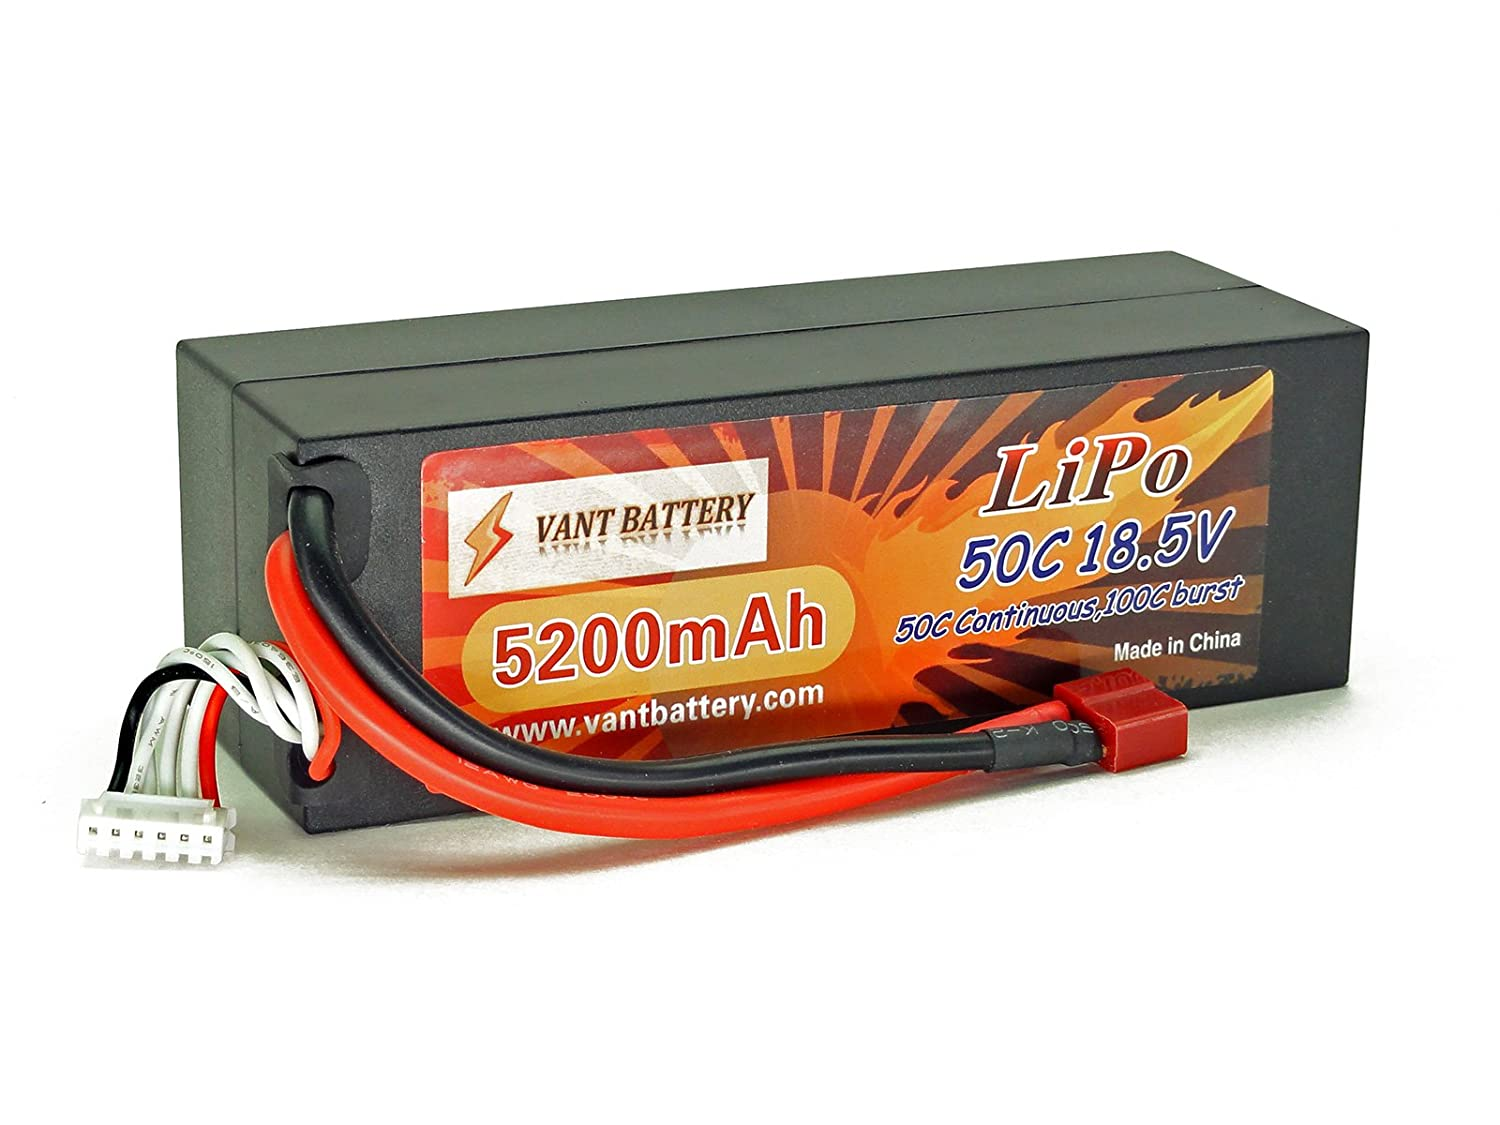 18.5V 5200mAh 5S Cell 50C-100C HardCase LiPo Battery Pack w/ Deans Ultra Plug Style Connector Vant Battery